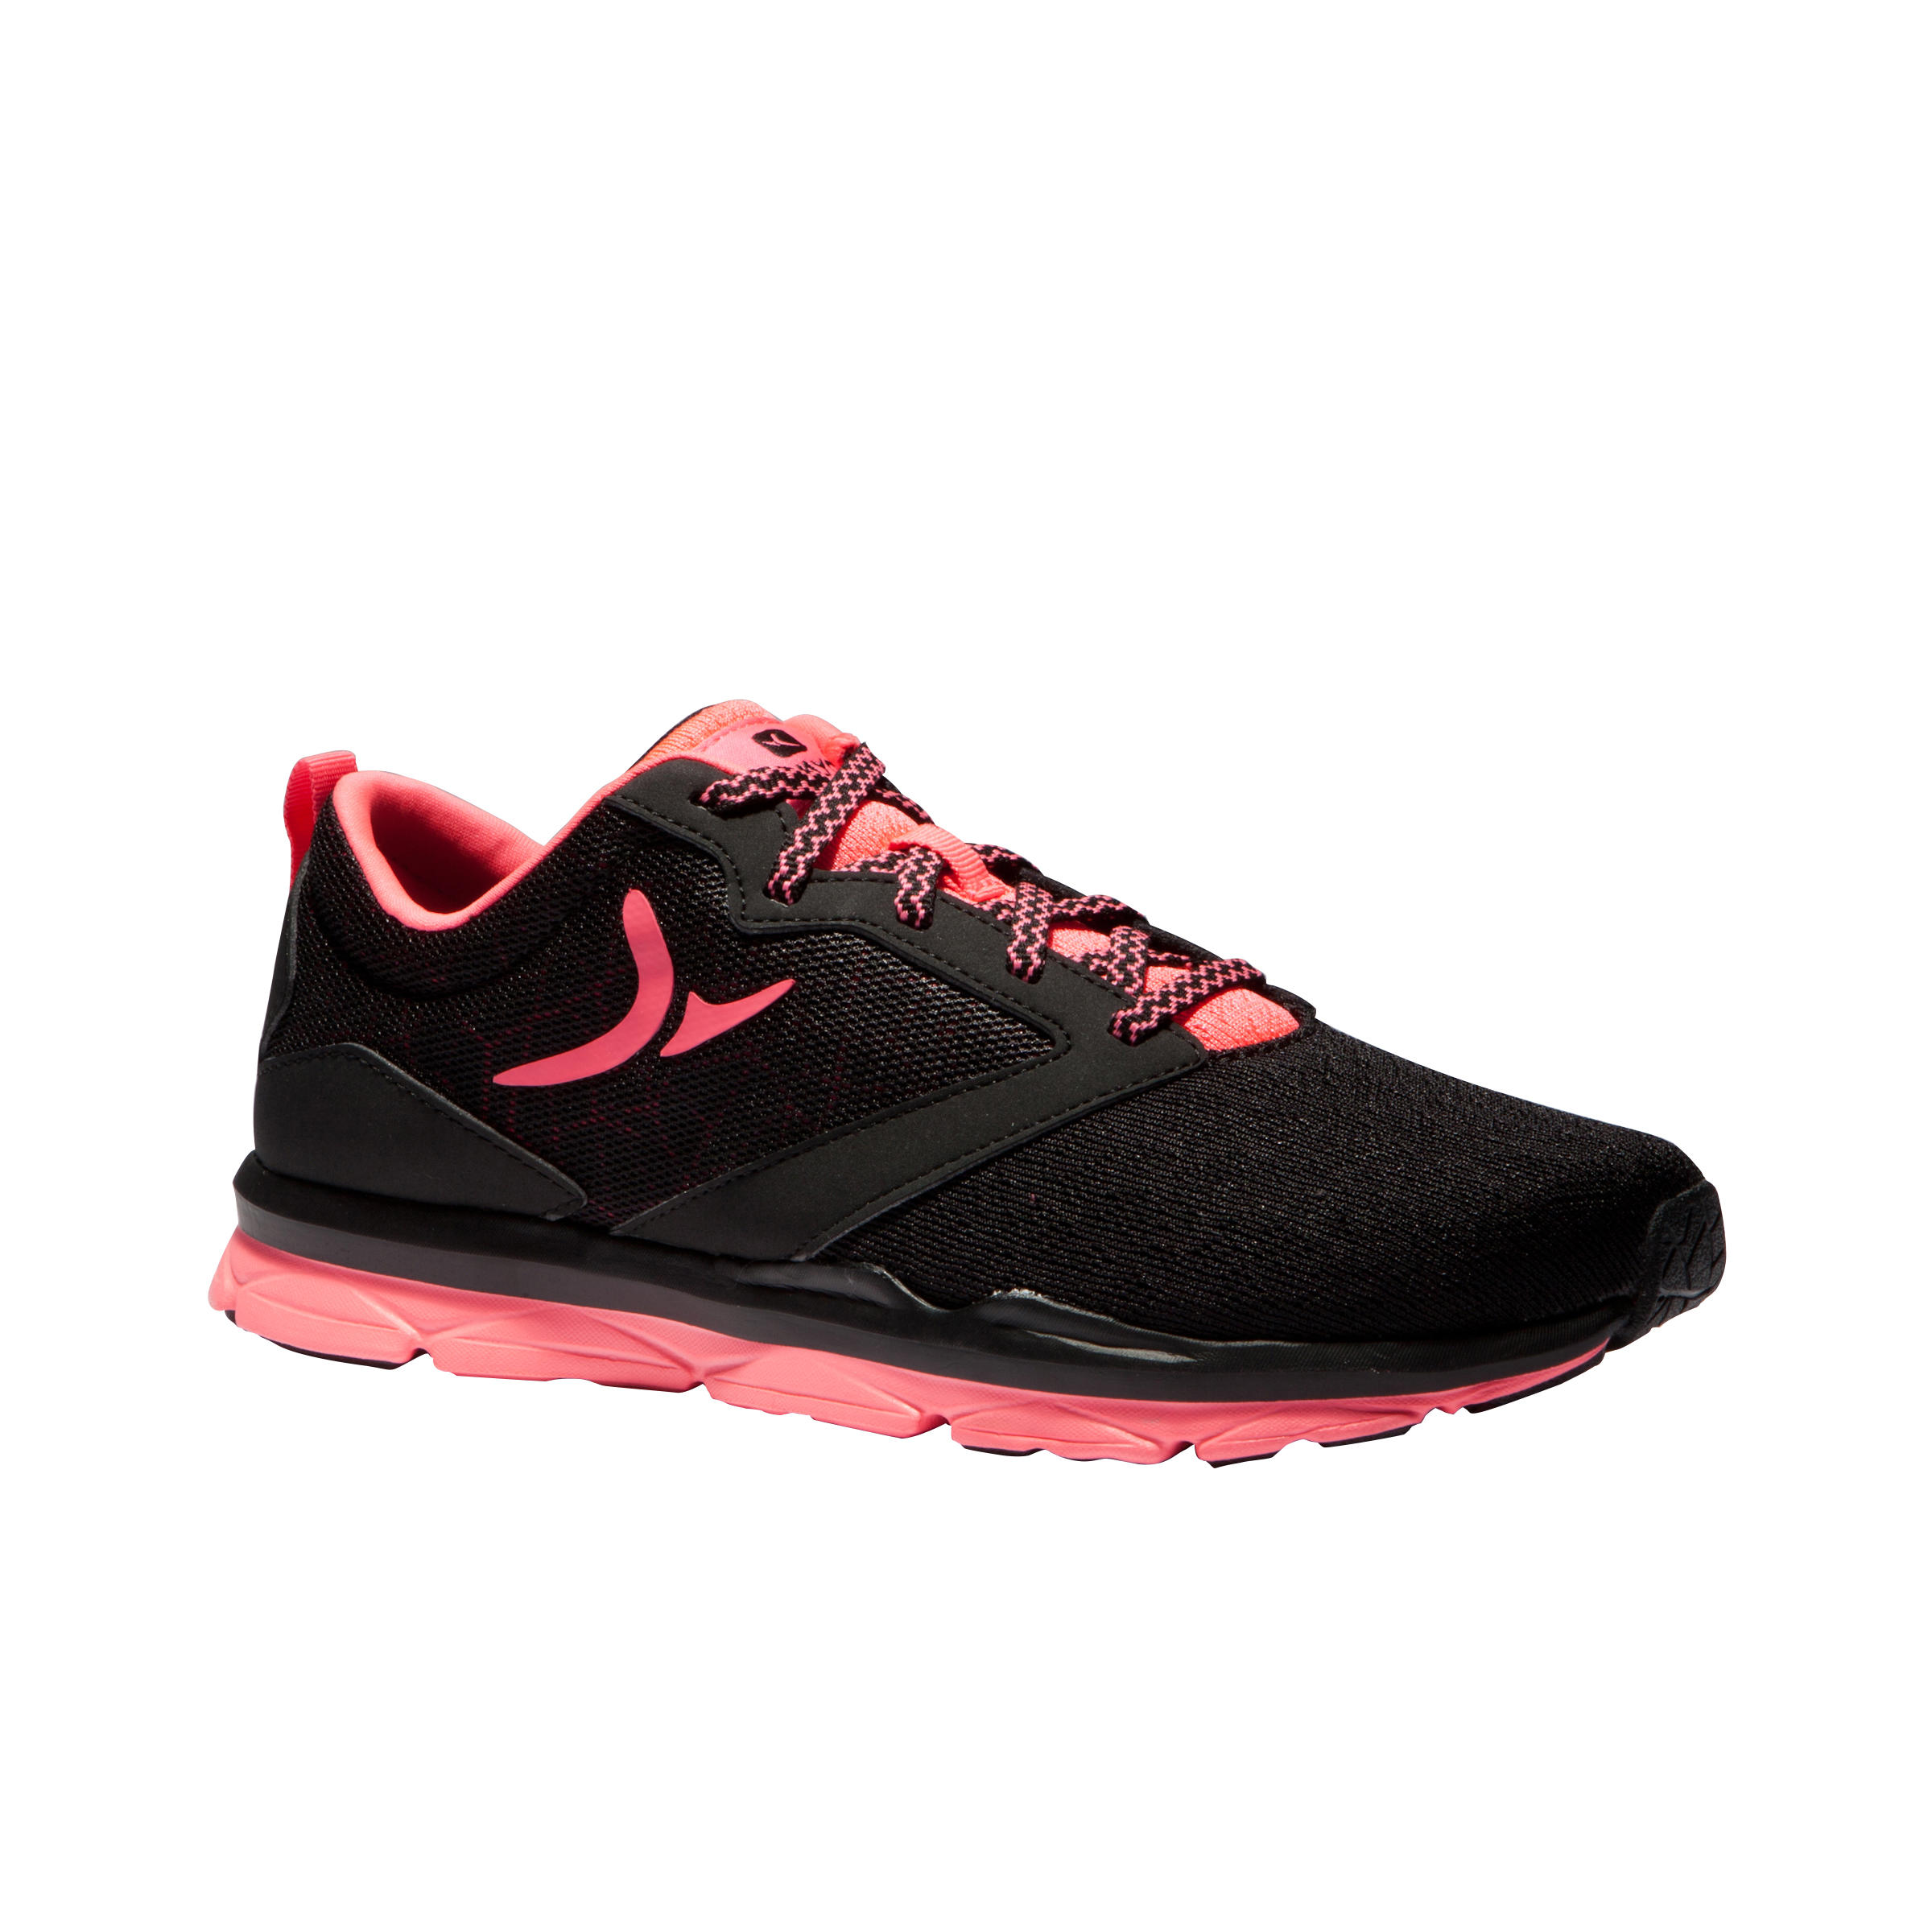 500 Women's Cardio Fitness Shoes - Black/Pink